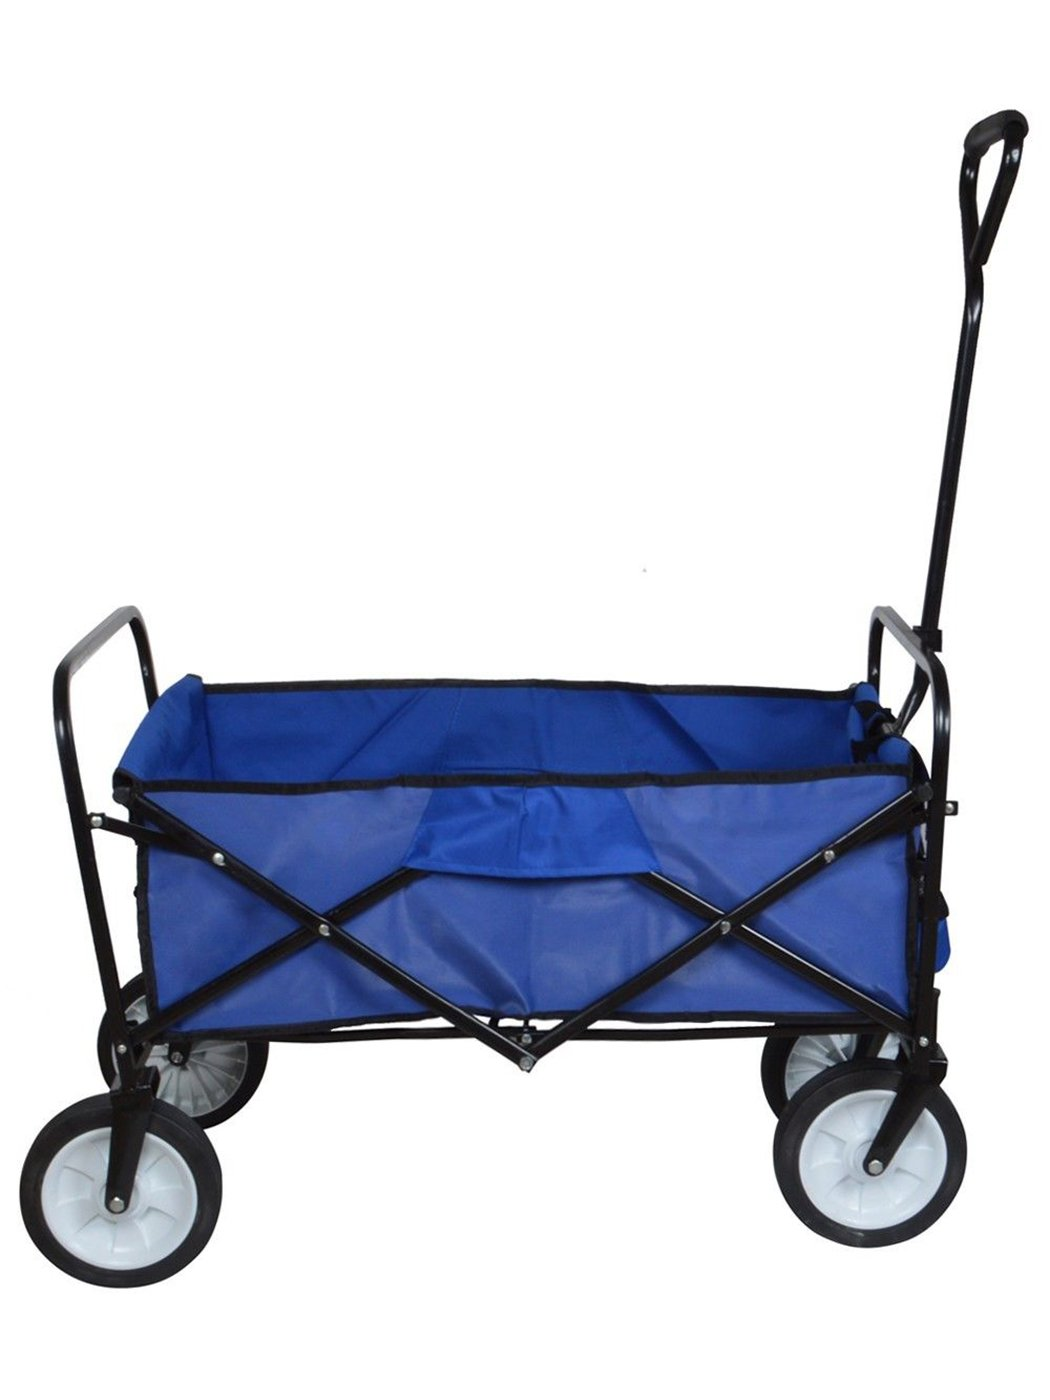 Gracelove Sports Collapsible Folding Utility Wagon Collapsible Garden Cart  Beach Blue